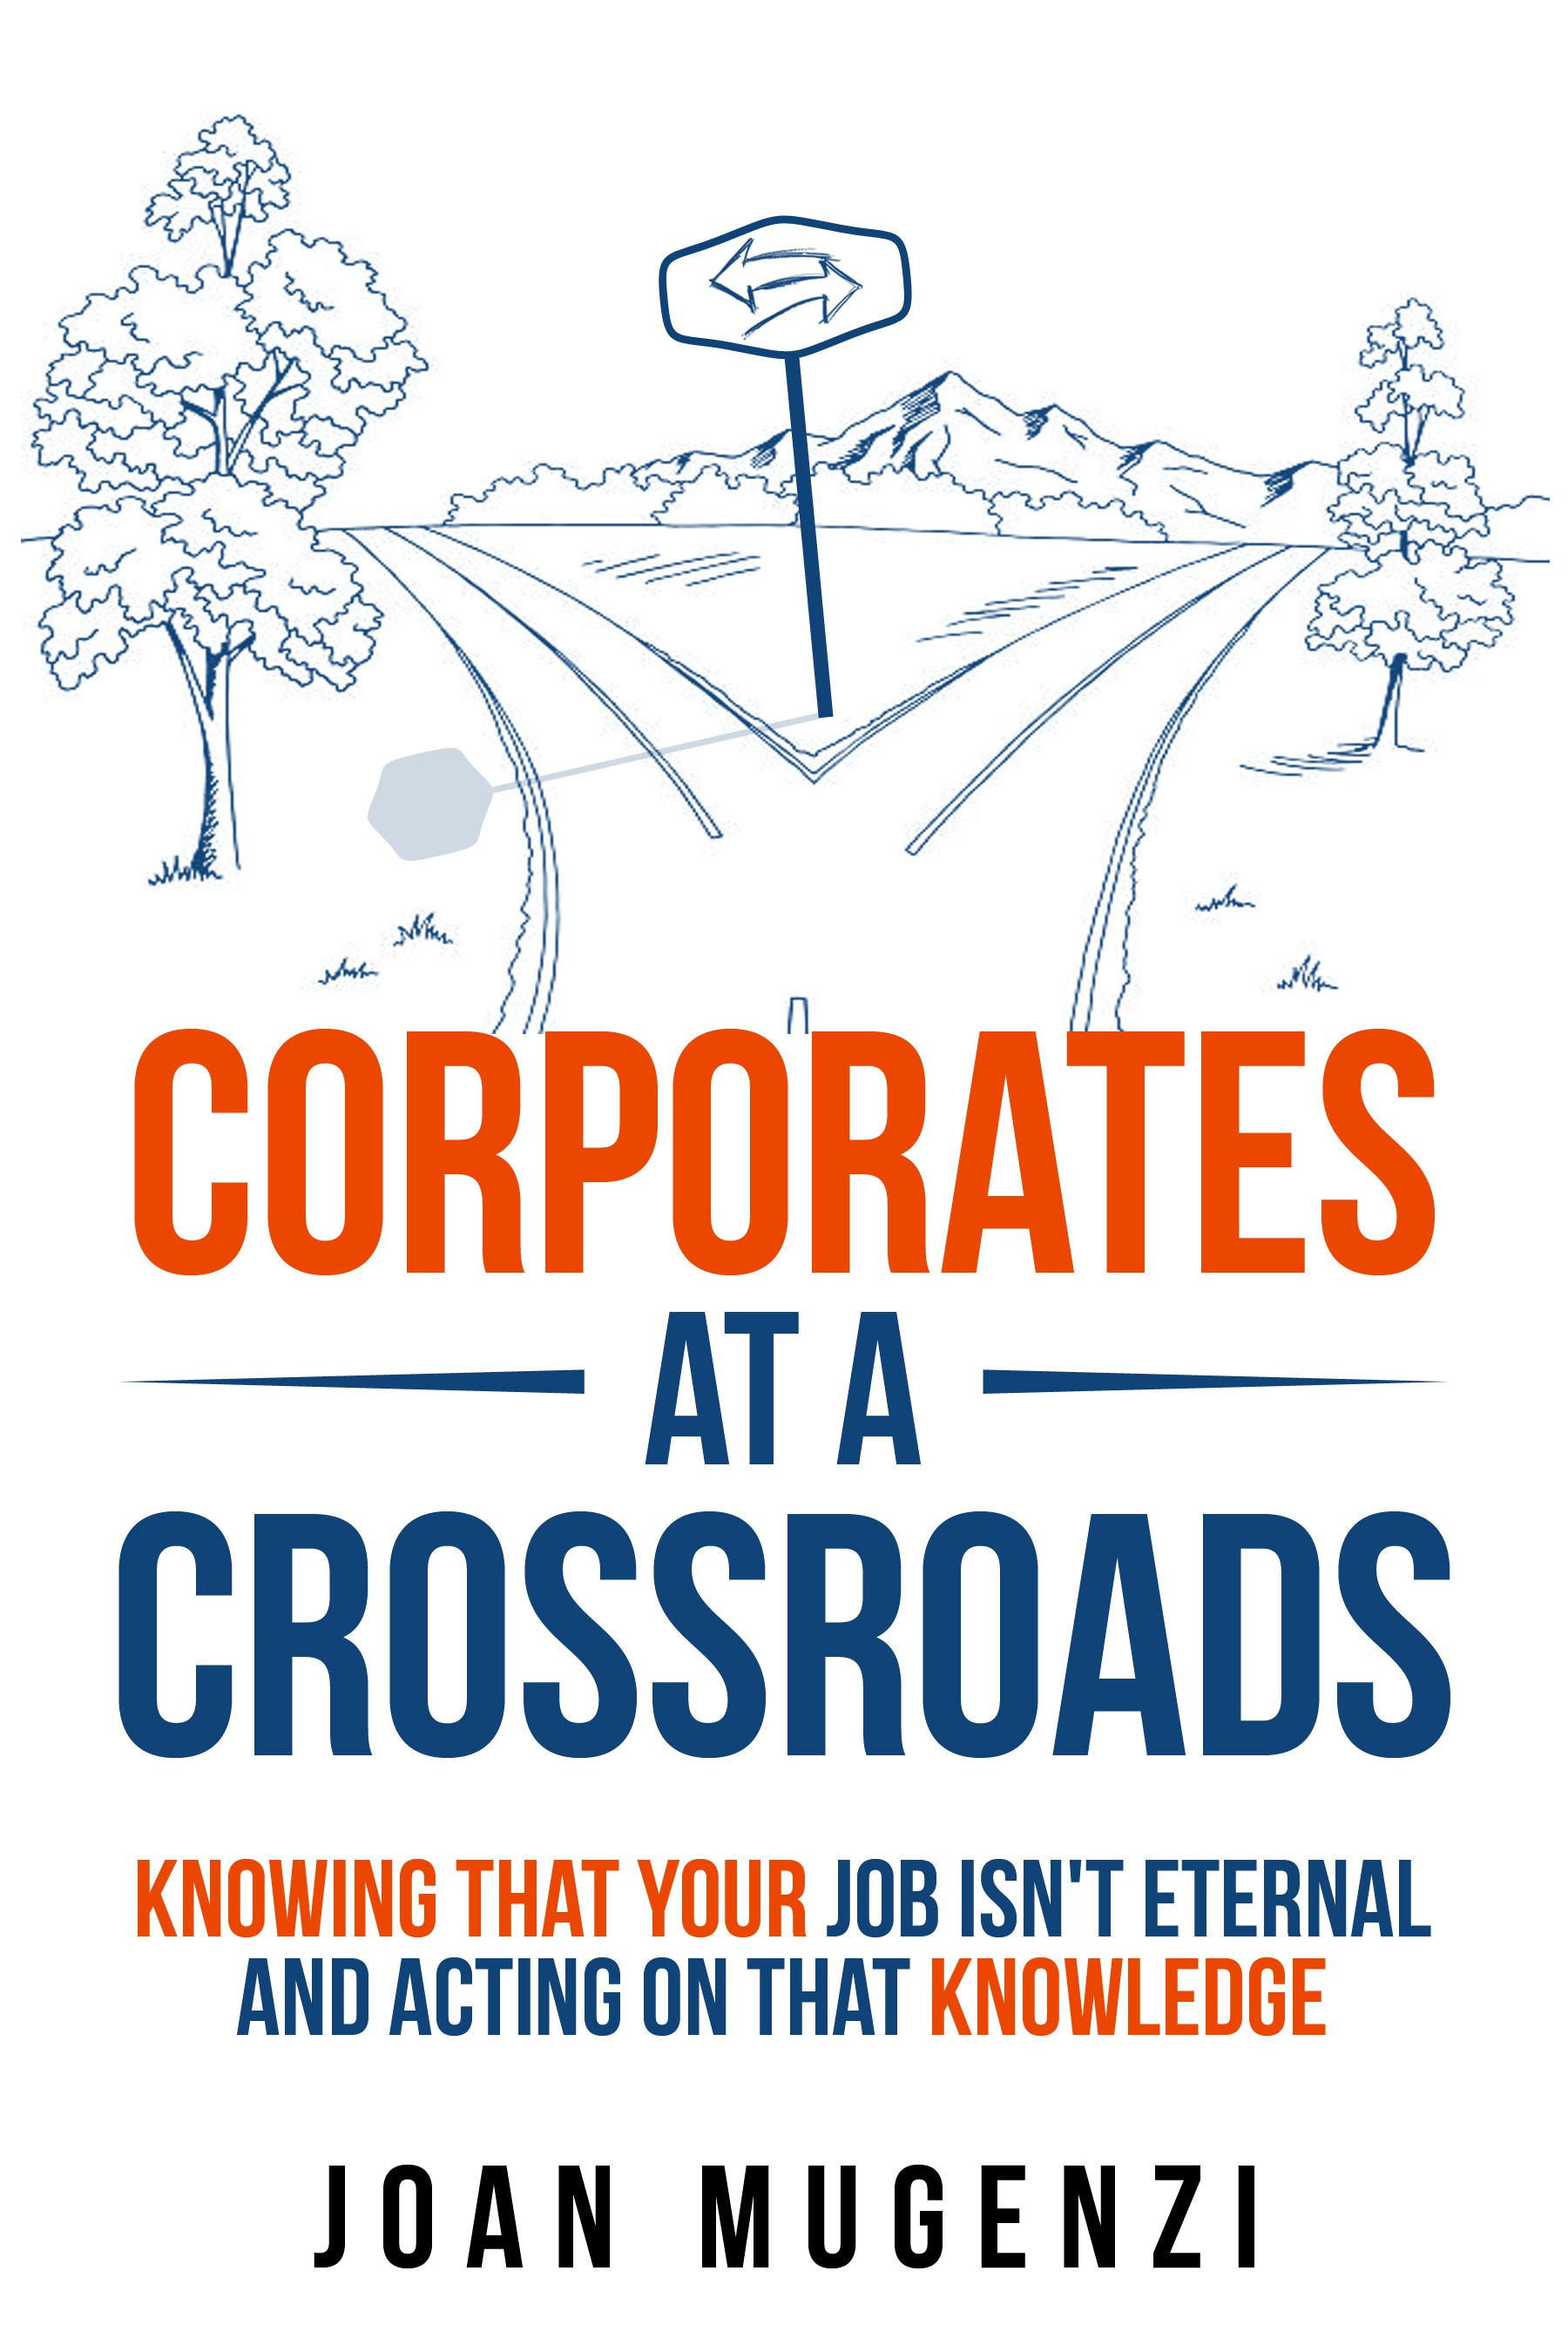 Corporates At A Crossroads. Corporates is representing employees